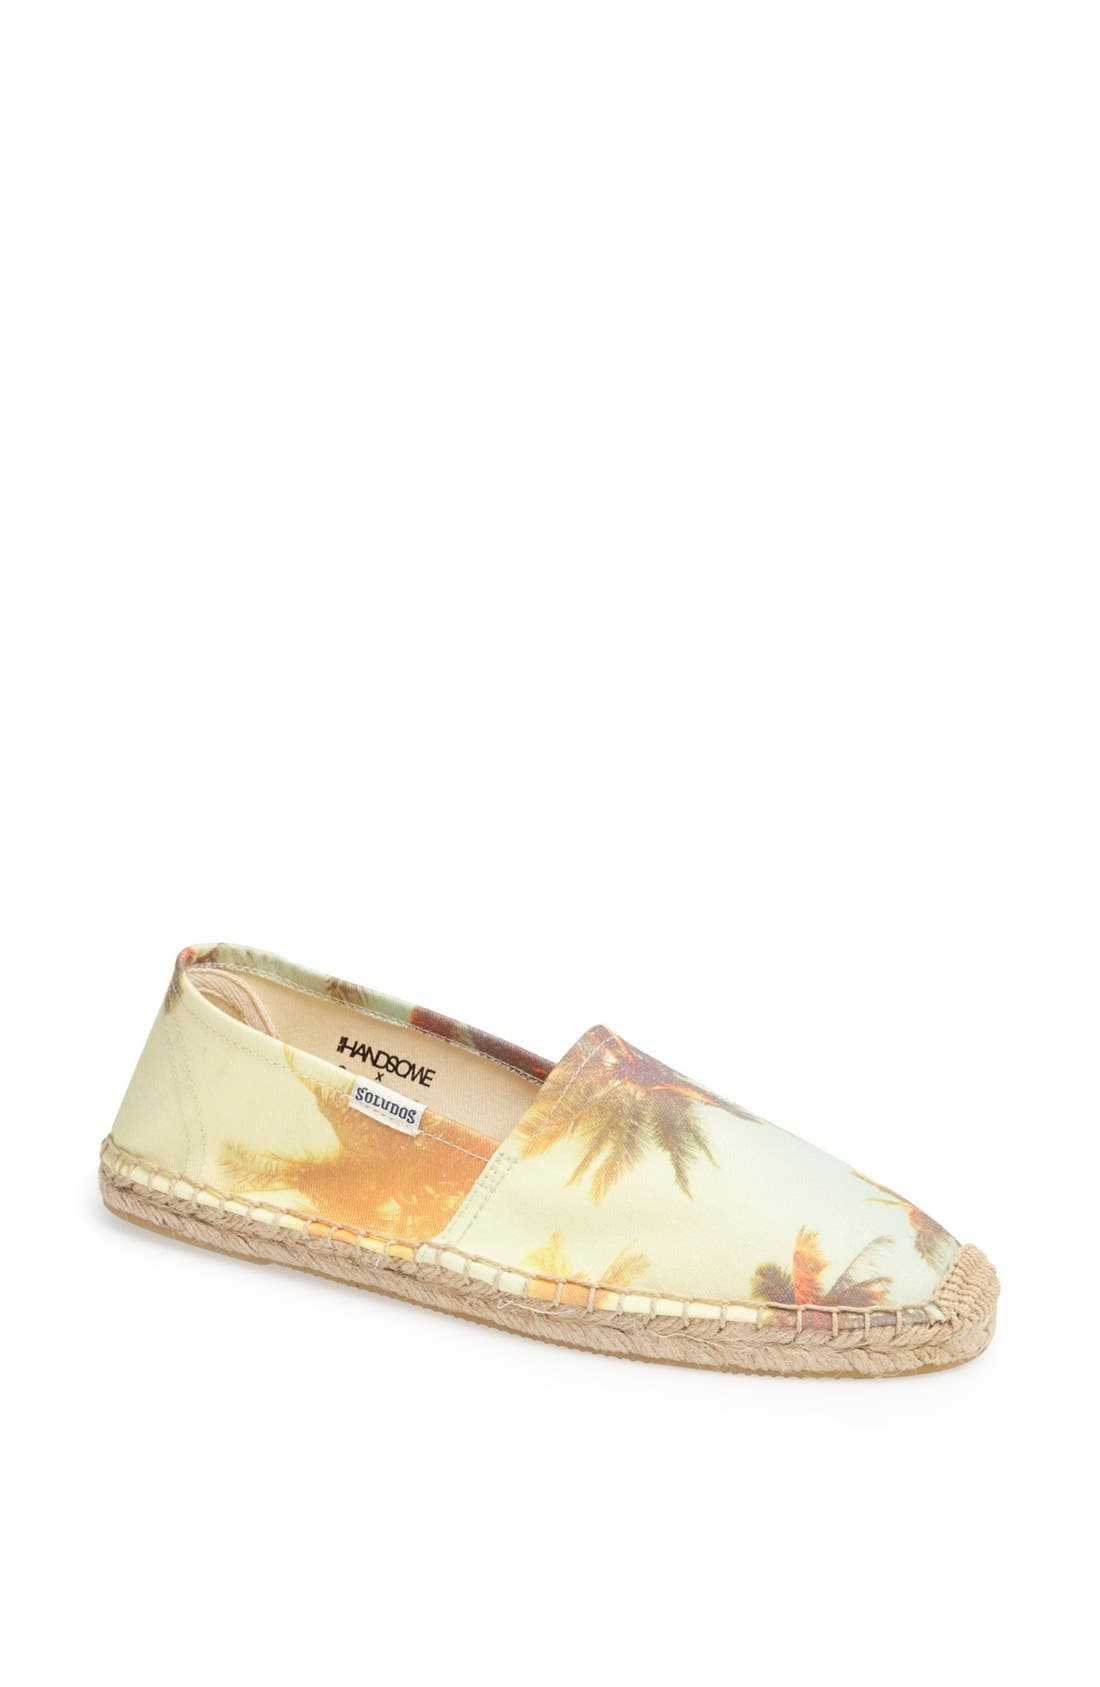 Alternate Image 1 Selected - We Are Handsome x Soludos Slip-On (Limited Edition) (Women)